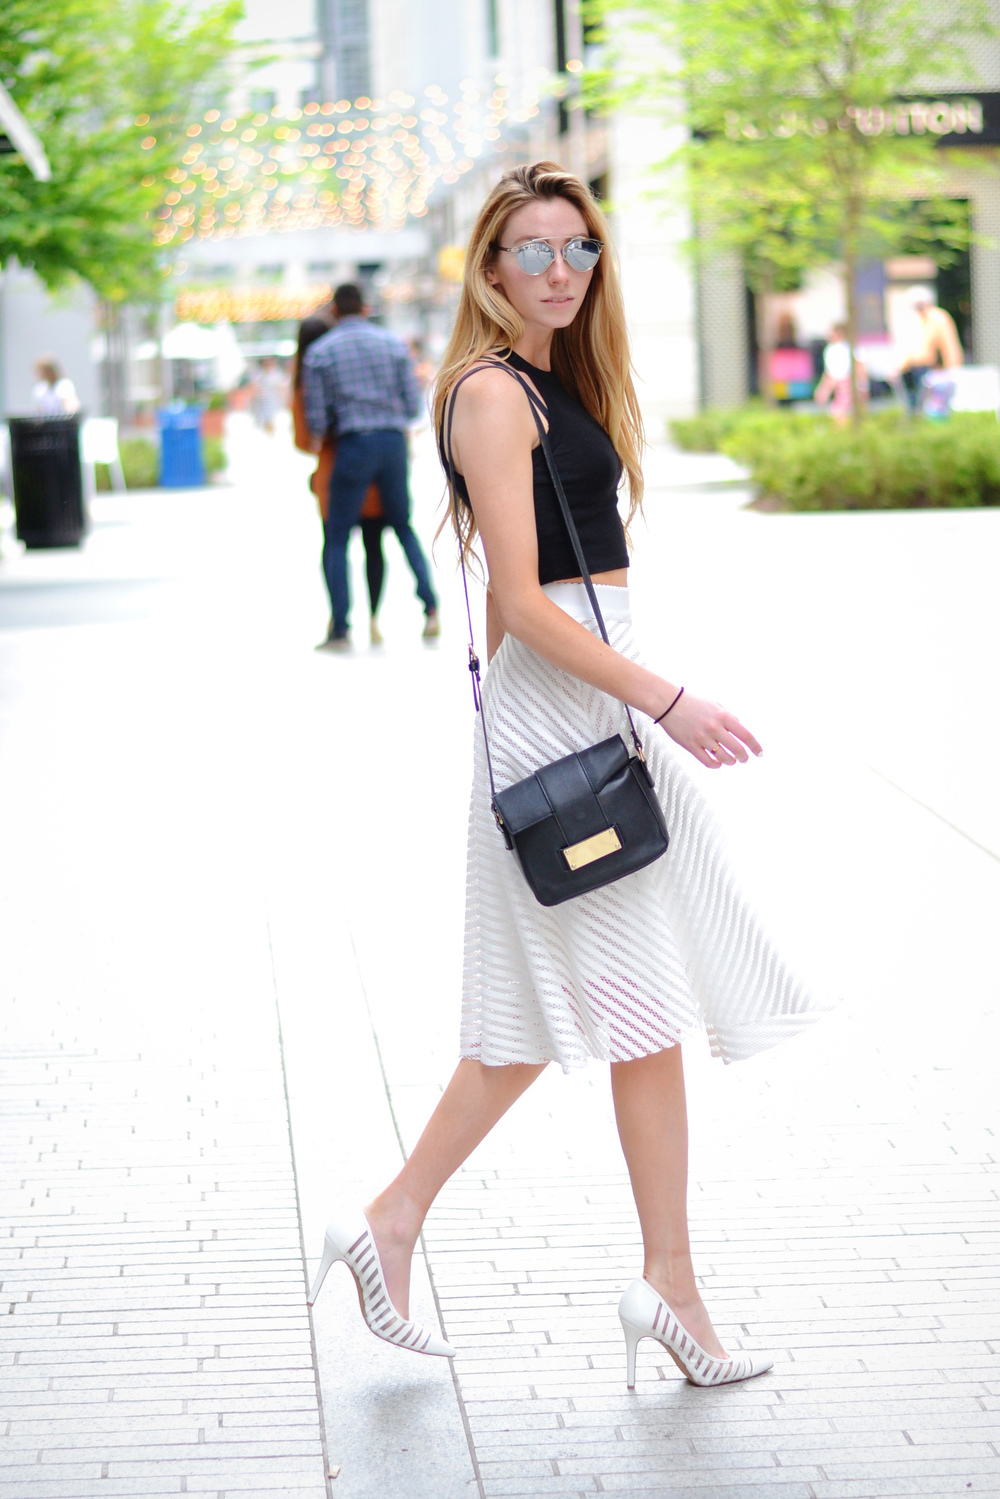 White Midi Skirt (via Chic Now)